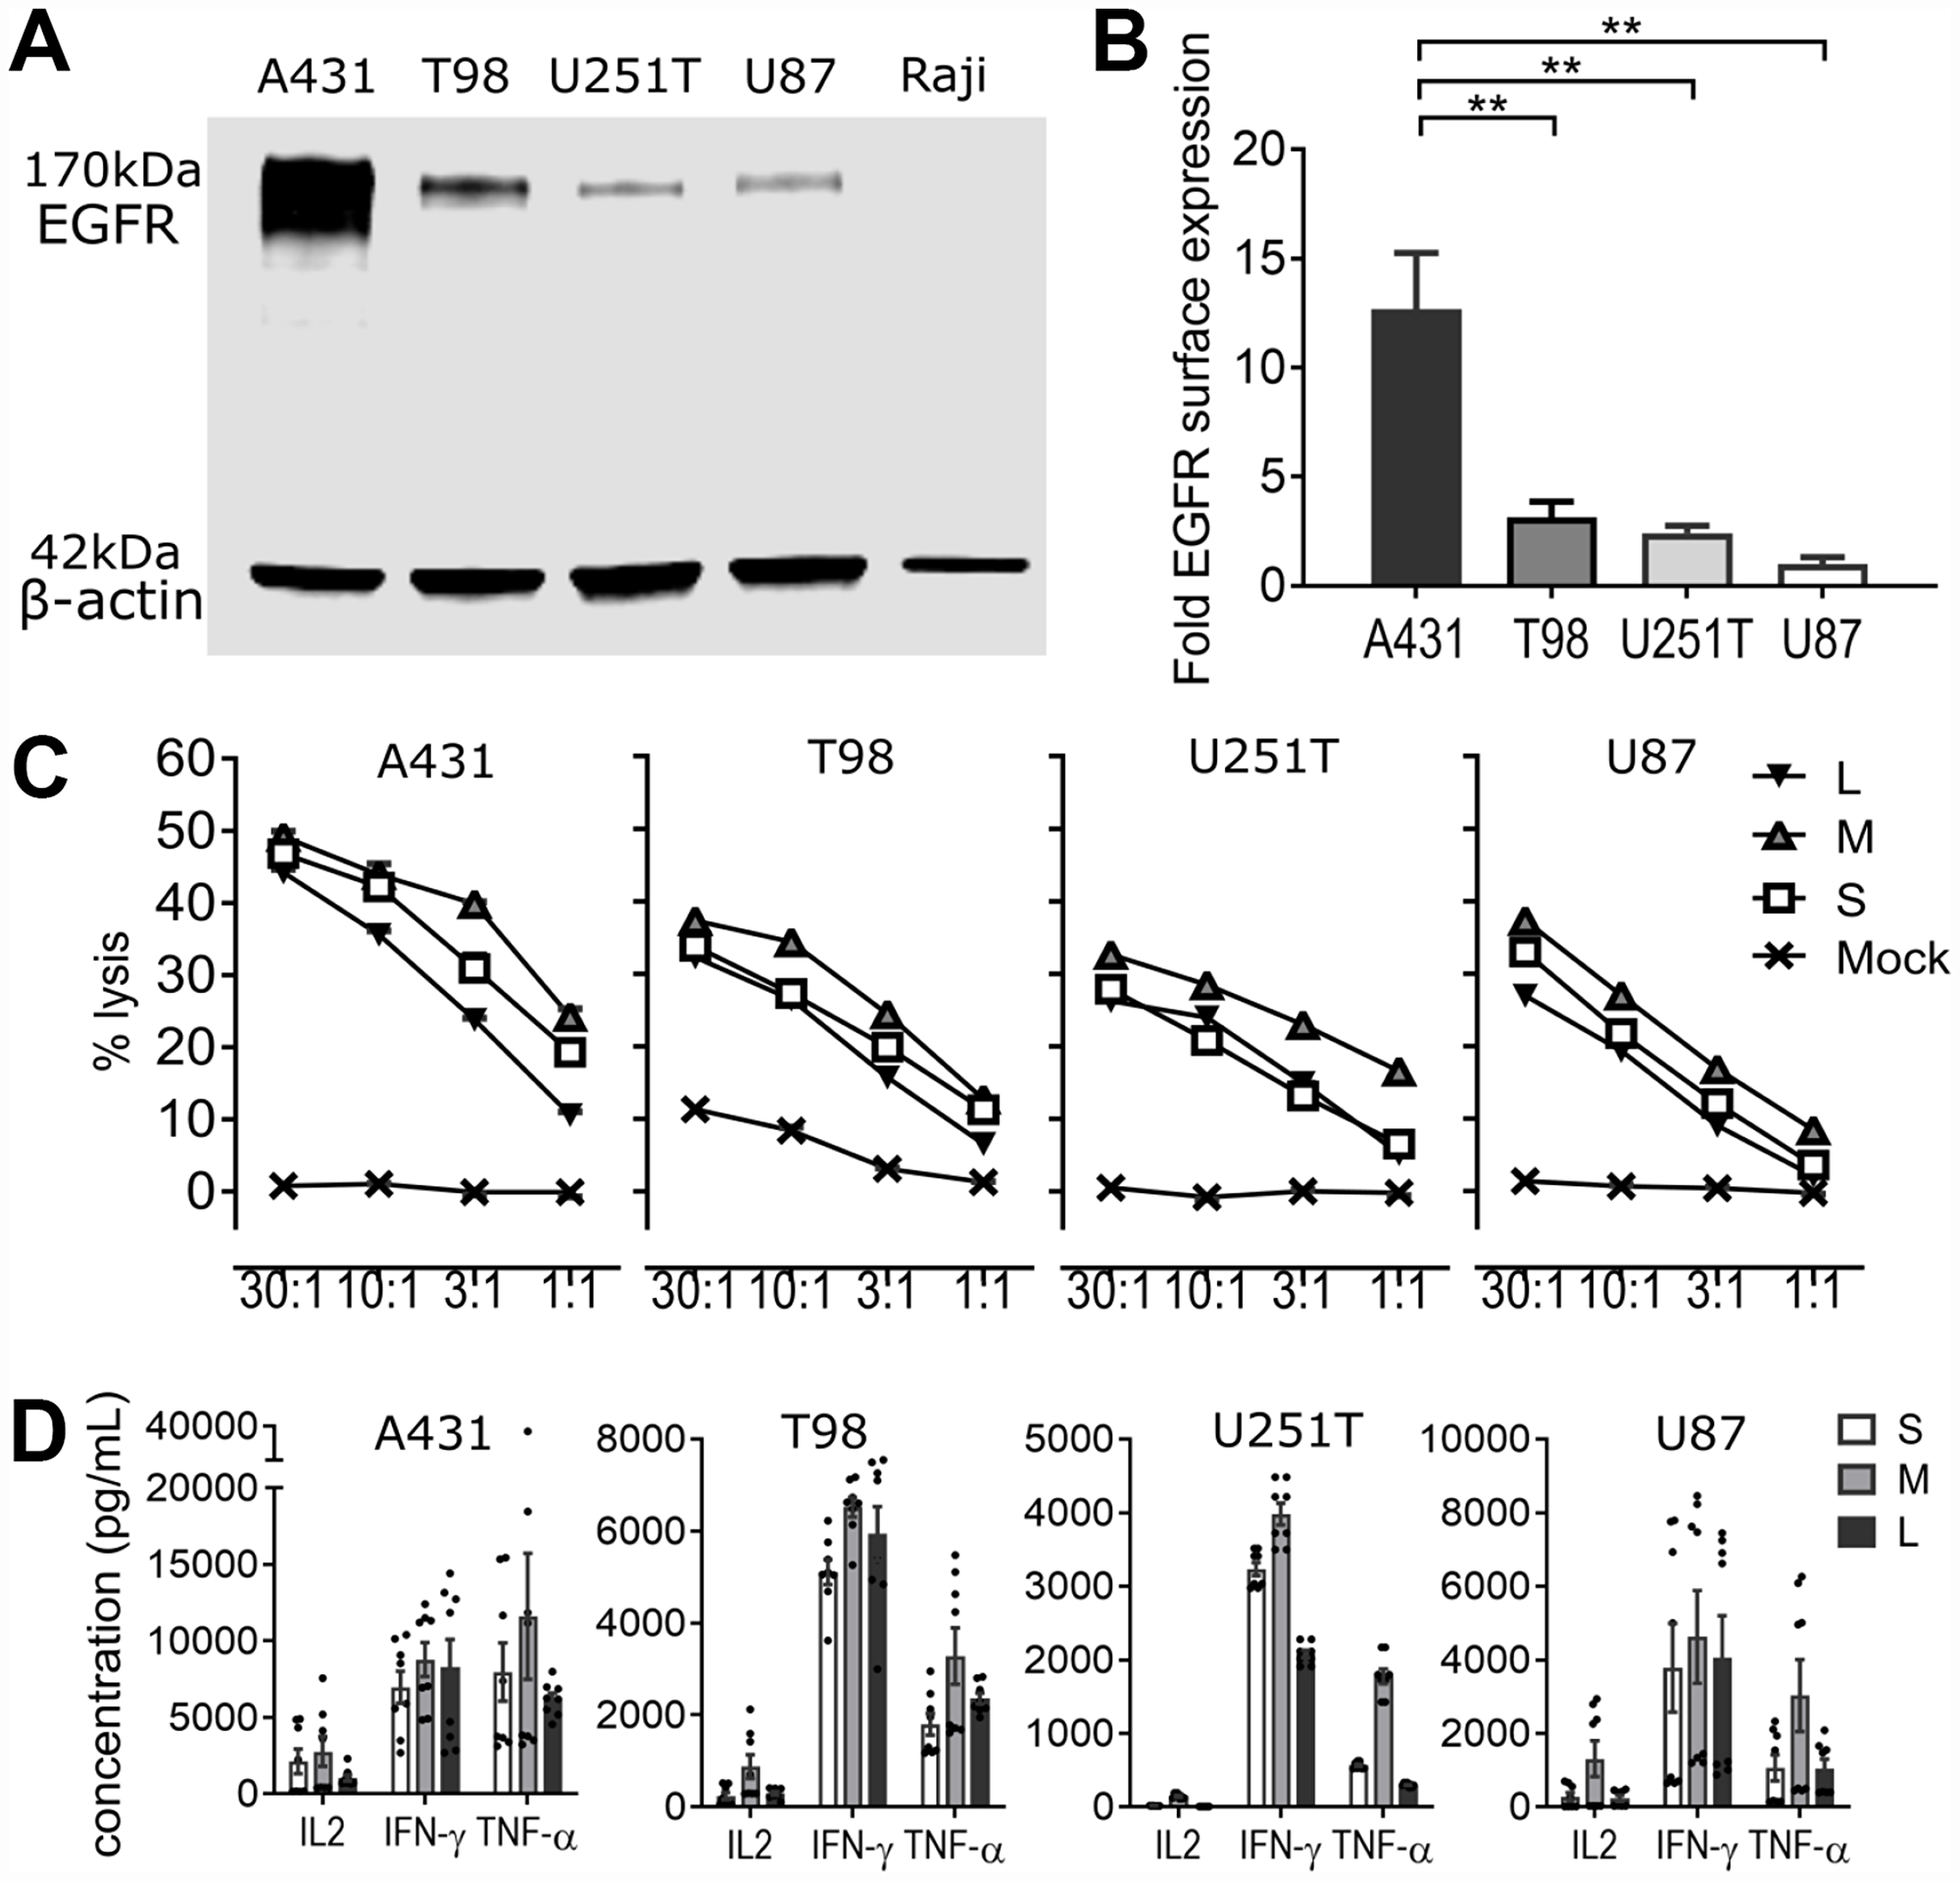 EGFR806-CAR T cells are selectively activated by tumor-specific EGFR expression in vitro.